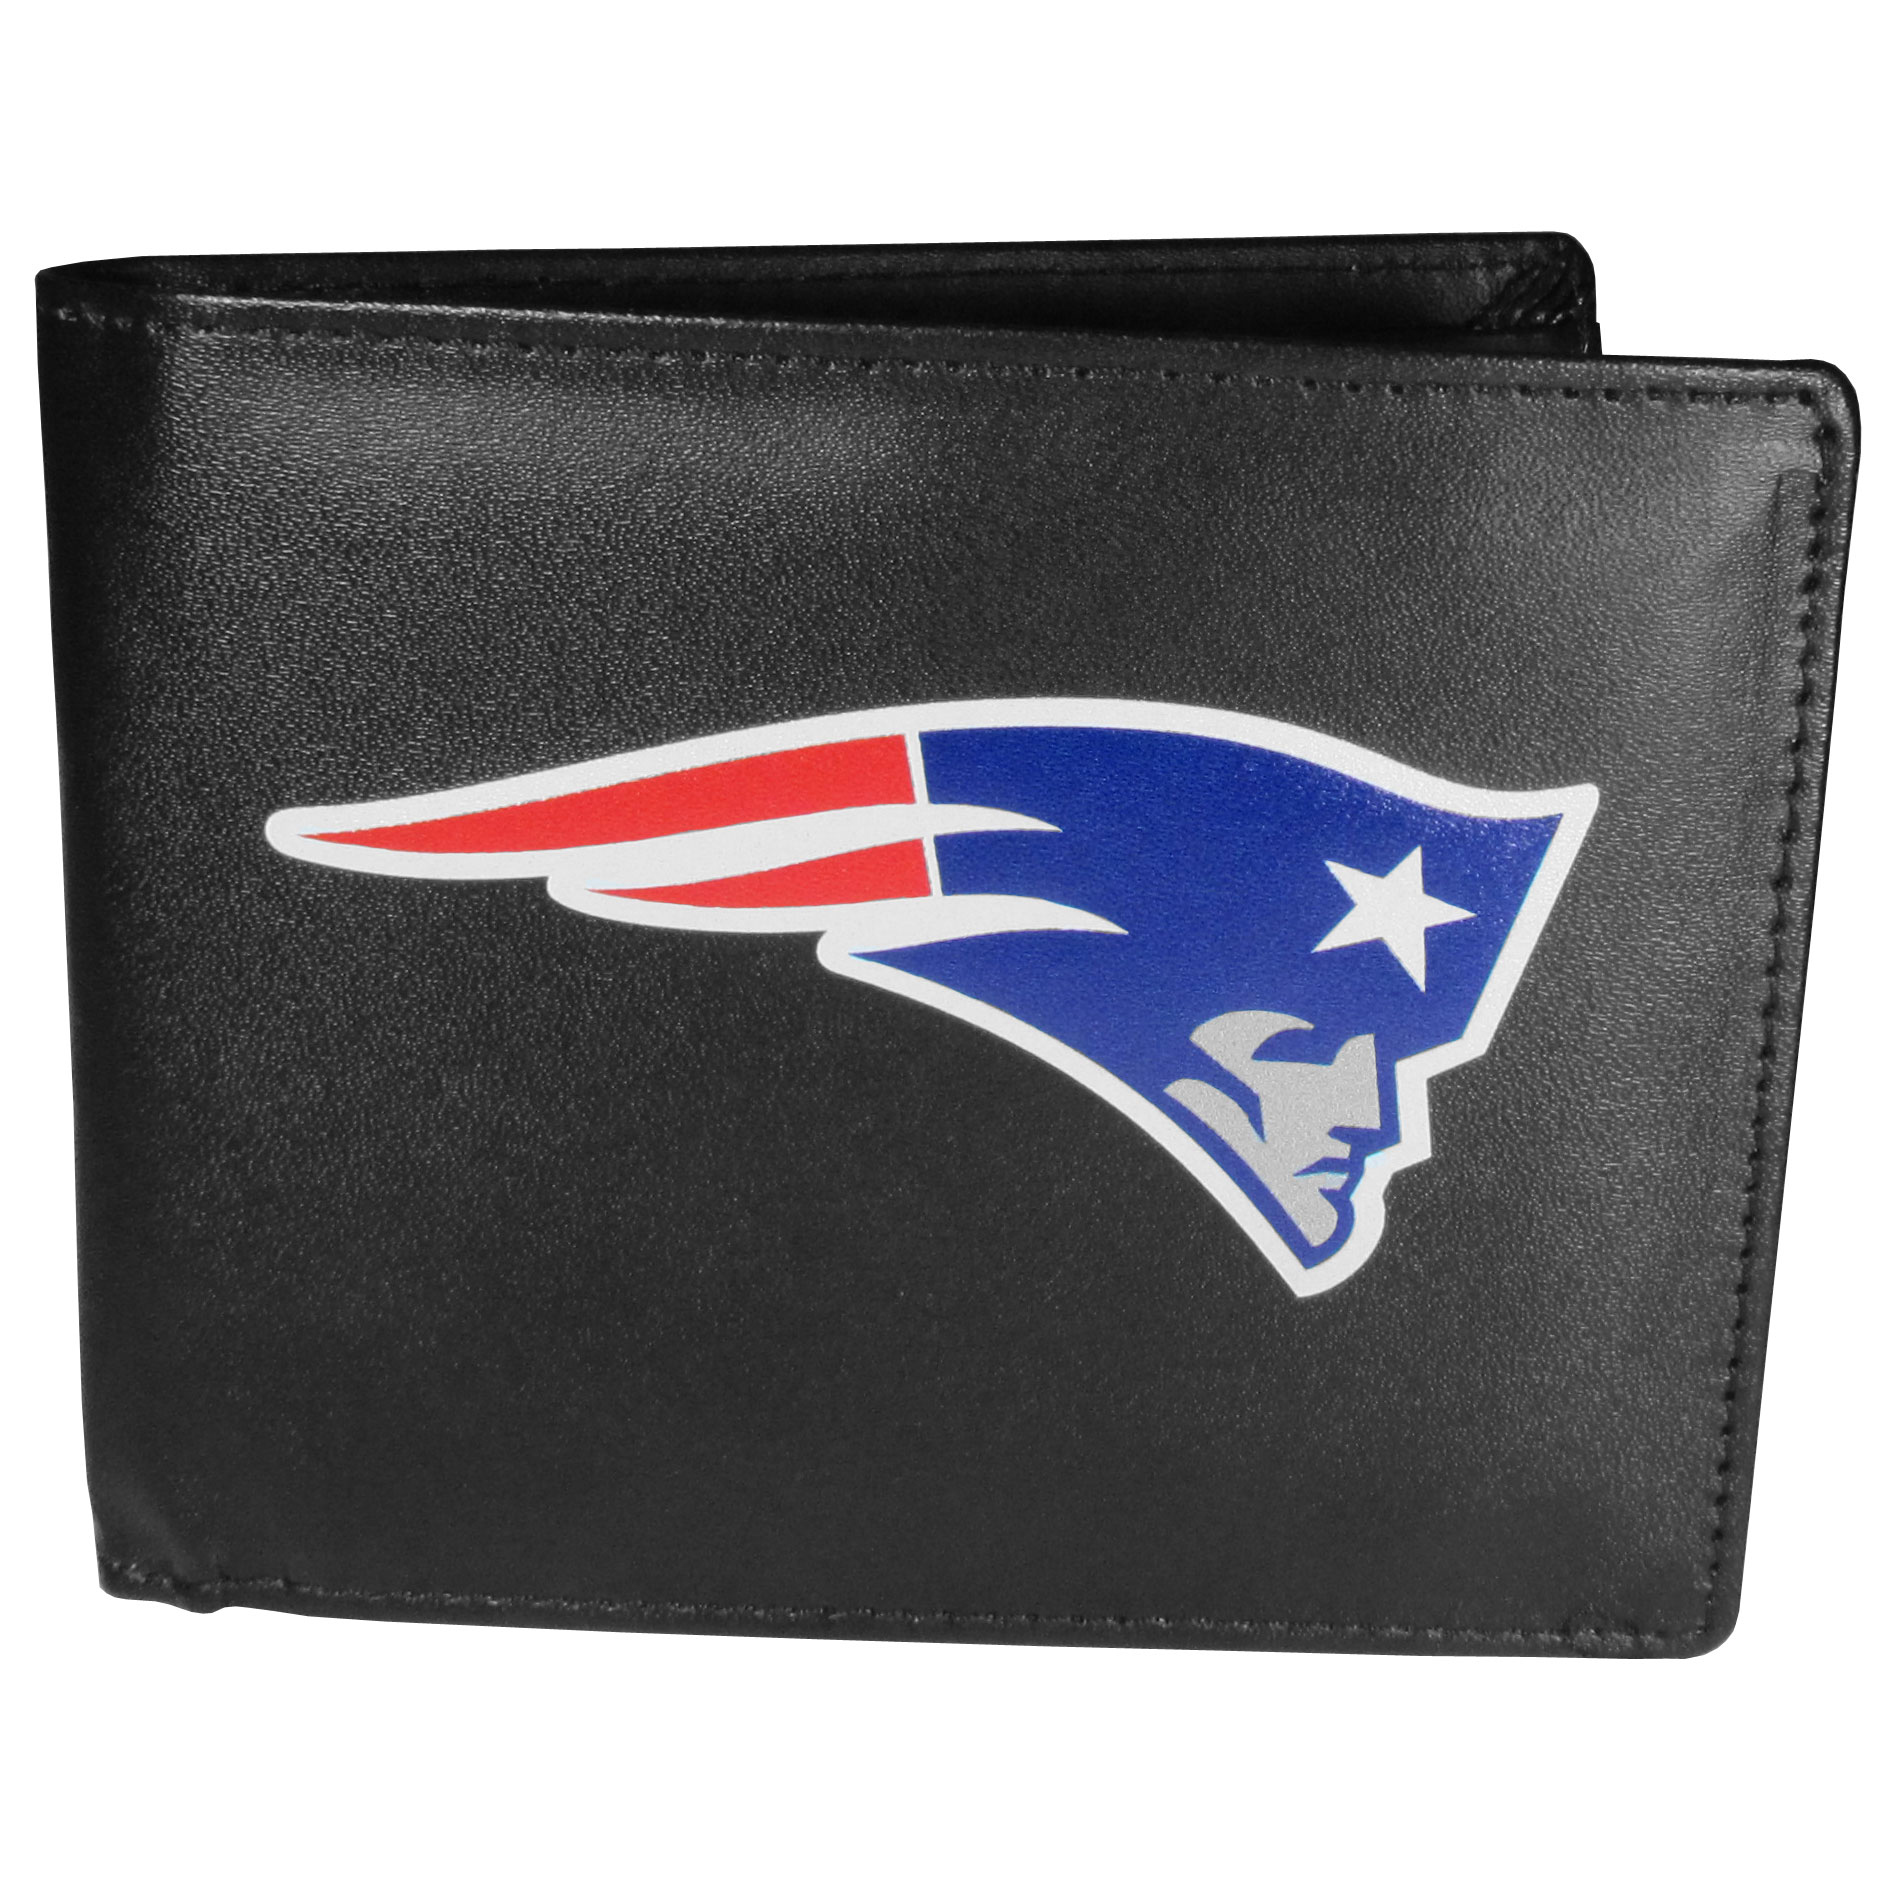 New England Patriots Leather Bi-fold Wallet, Large Logo - Our classic fine leather bi-fold wallet is meticulously crafted with genuine leather that will age beautifully so you will have a quality wallet for years to come. The wallet opens to a large, billfold pocket and numerous credit card slots and has a convenient windowed ID slot. The front of the wallet features an extra large New England Patriots printed logo.